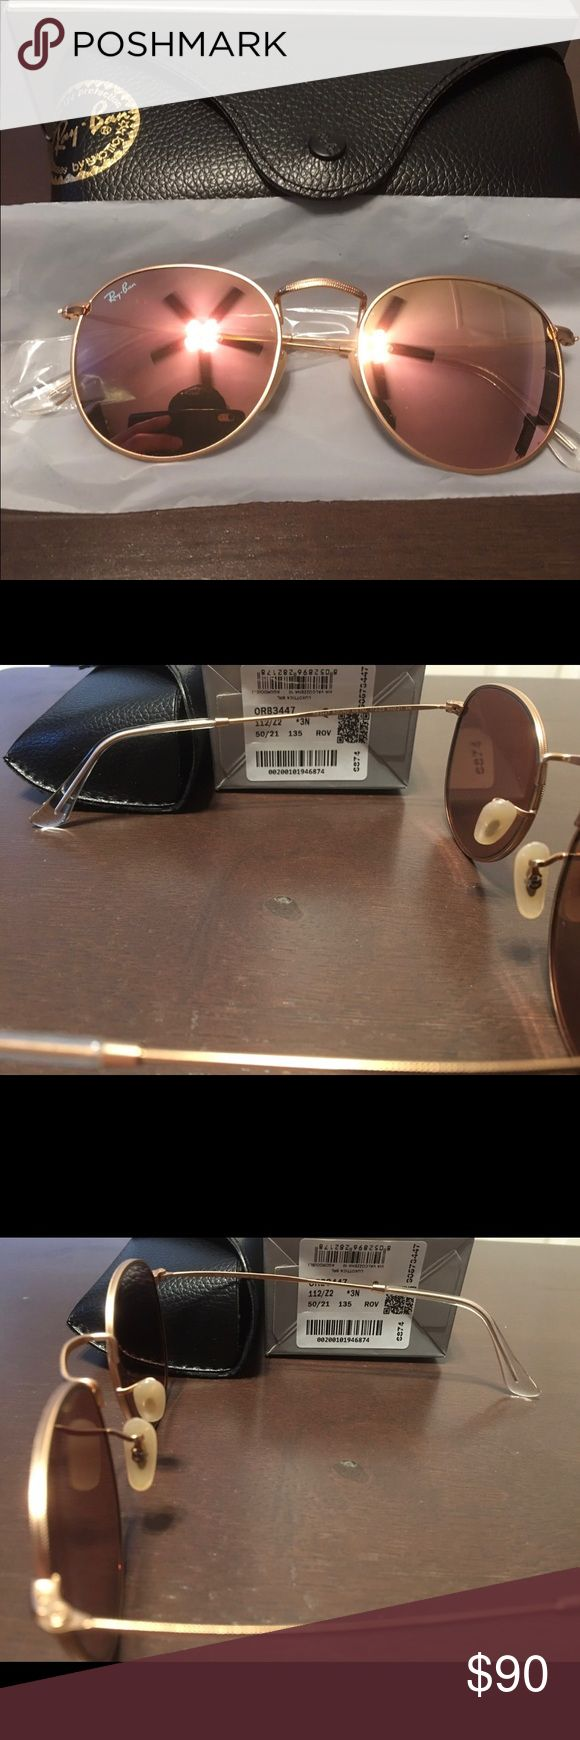 Ray Ban Round Metal RB 3447 Ray Ban Round Metal Brand New Model RB 3447 Matte gold frame with pink lens RB etched lense Authentic Made in Italy Includes box, case, manual, and cloth Size 50 mm (Standard Size) Unisex Frames If not satisfied upon delivery please contact me on any listing. WILLING TO TAKE ANY REASONABLE OFFERS!  #summer #spring #RB4175 #RB4171 #RB4165 #RB3025 #RB3026 #RB3016 #clubmasters #clubmasteroversized #erikas #uv #sunglasses #justins #wayfarers #boyfriends #round…